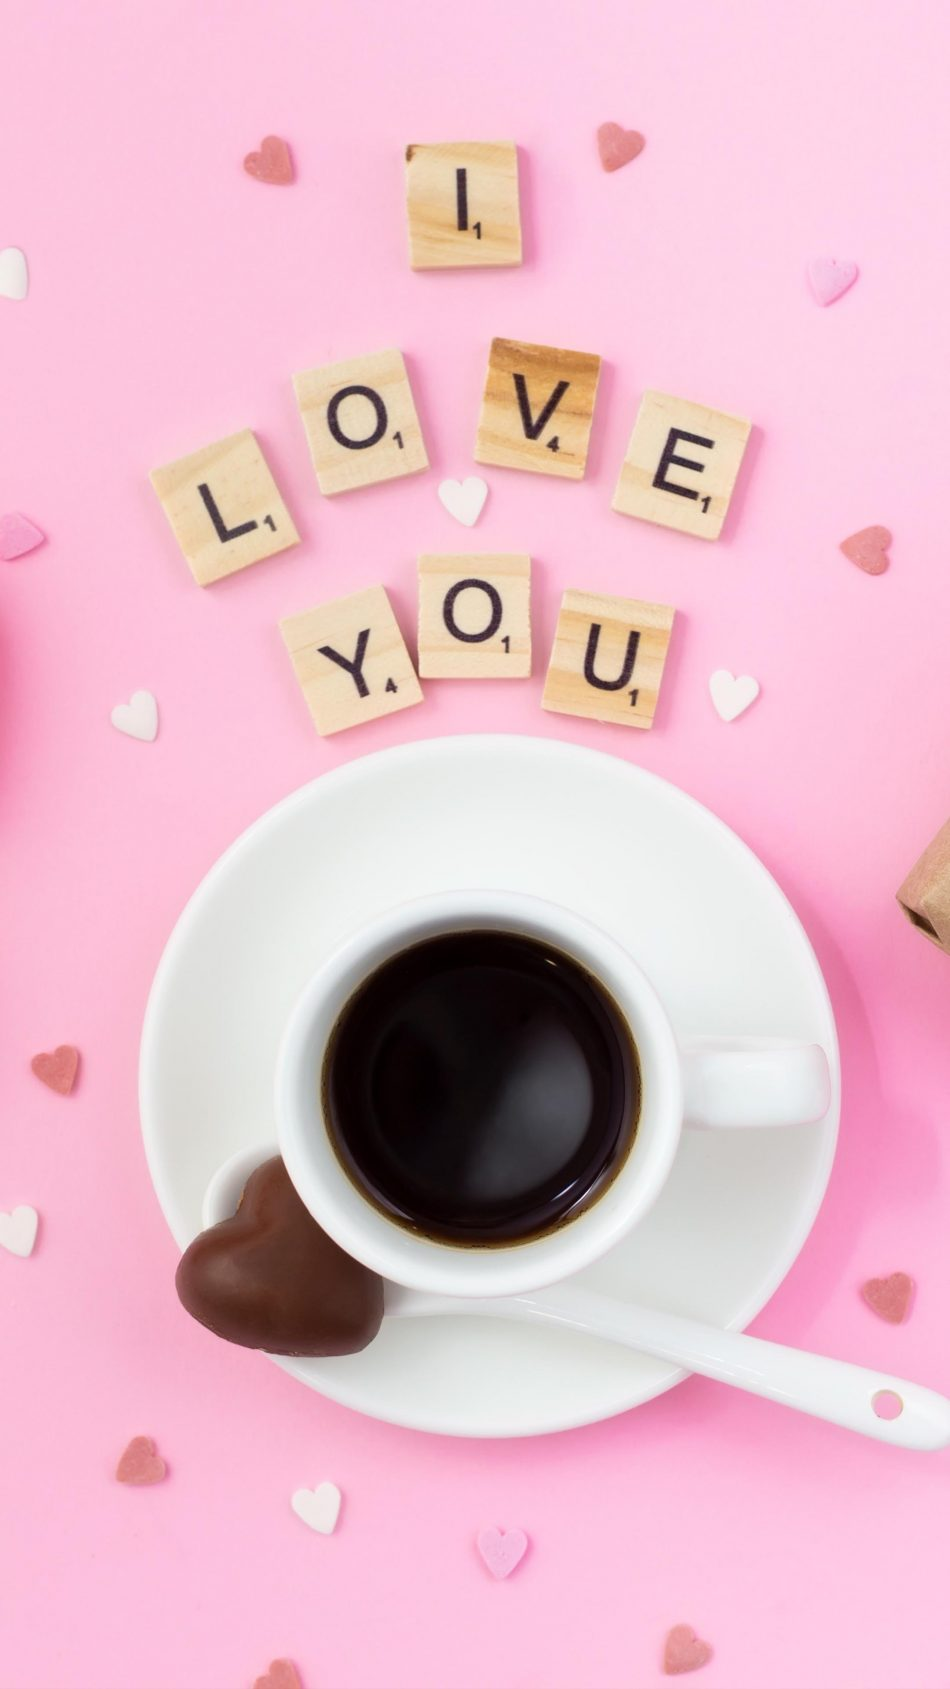 I Love You Coffee Cup 4K Ultra HD Mobile Wallpaper